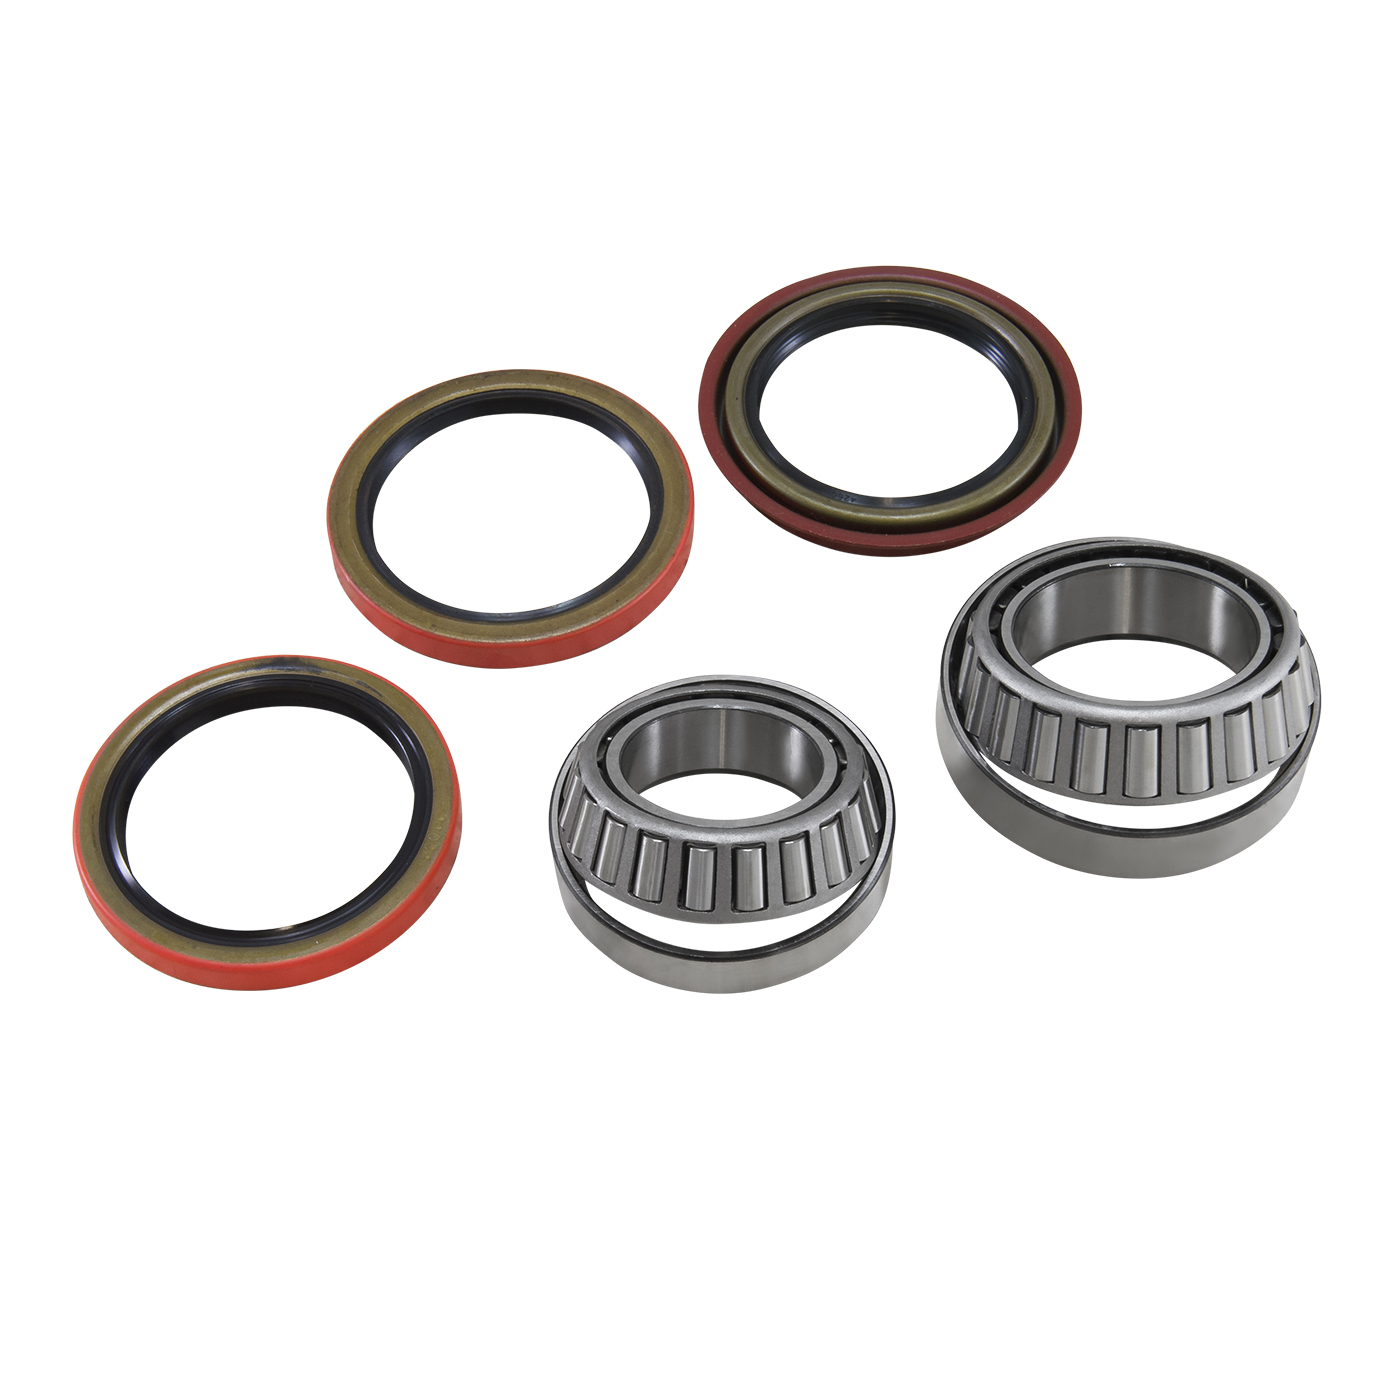 AK F-C02 - Yukon Front Axle Bearing and Seal Kit for Dana 44